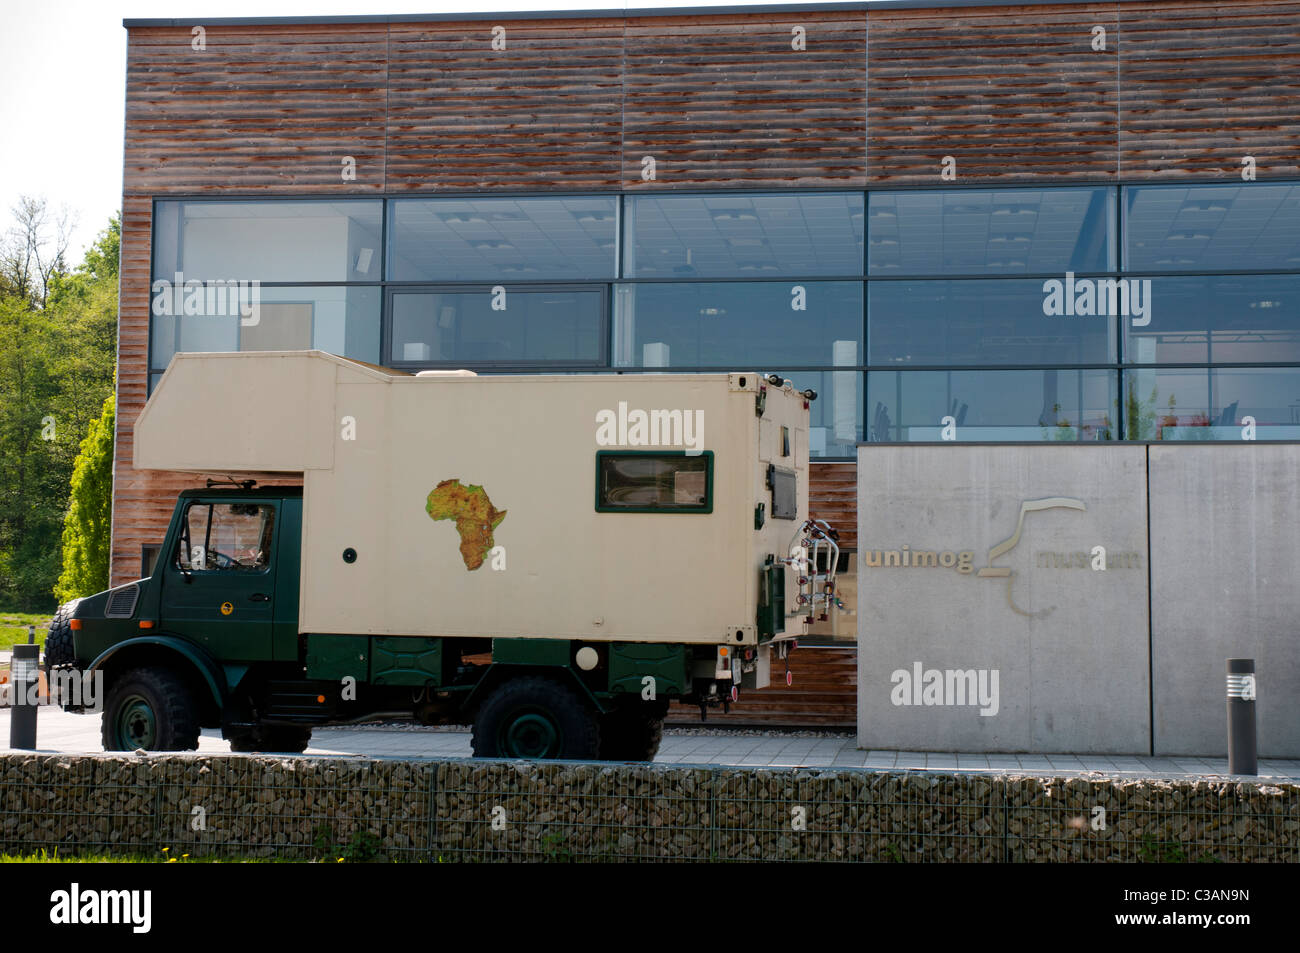 Worldwide unique Unimog museum, Rotenfels, Gaggenau, Black Forest, Baden-Wuerttemberg, Germany - Stock Image